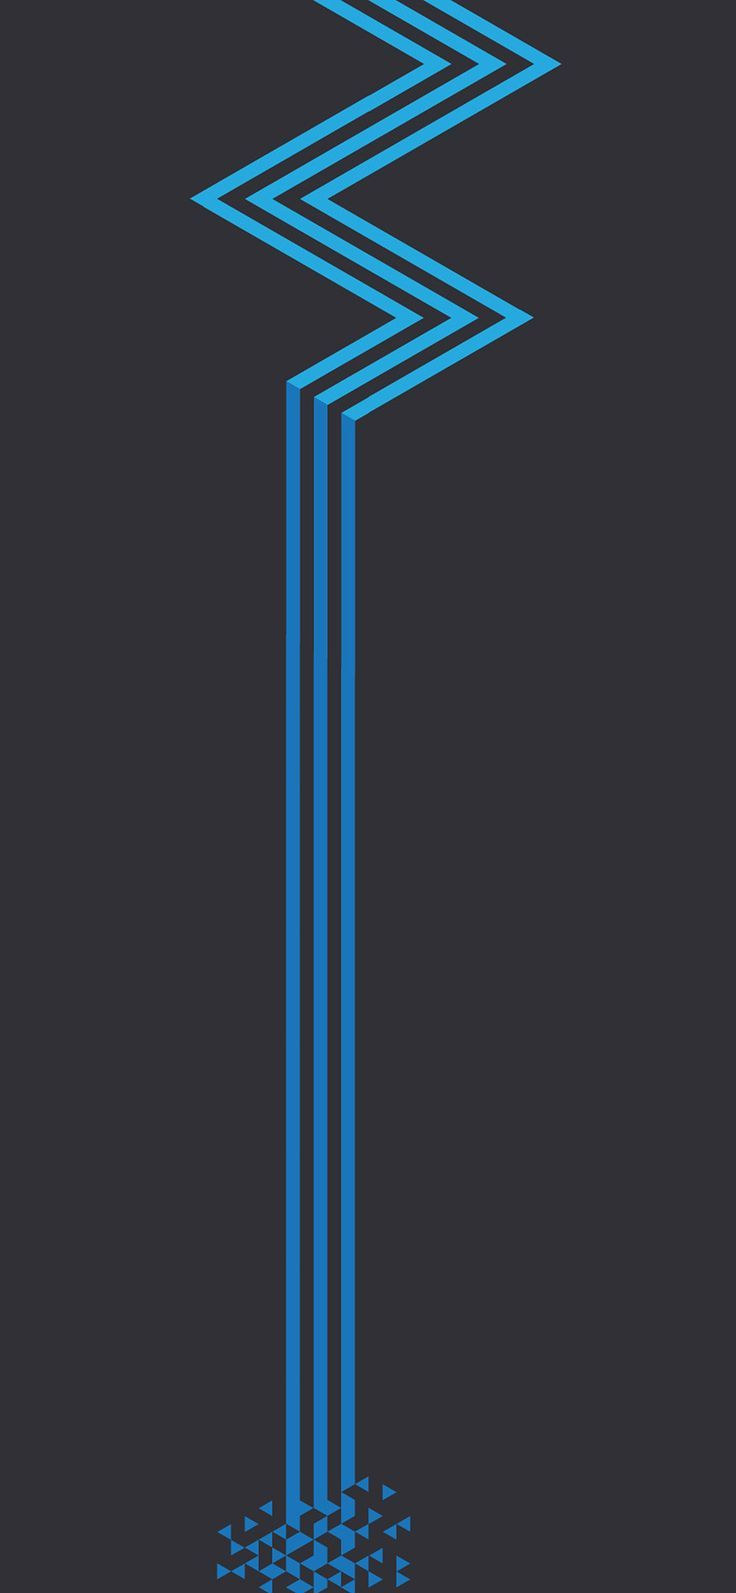 736x1593 iPhone X wallpapers : vz23-minimal-blue-dark-line-abstract ...